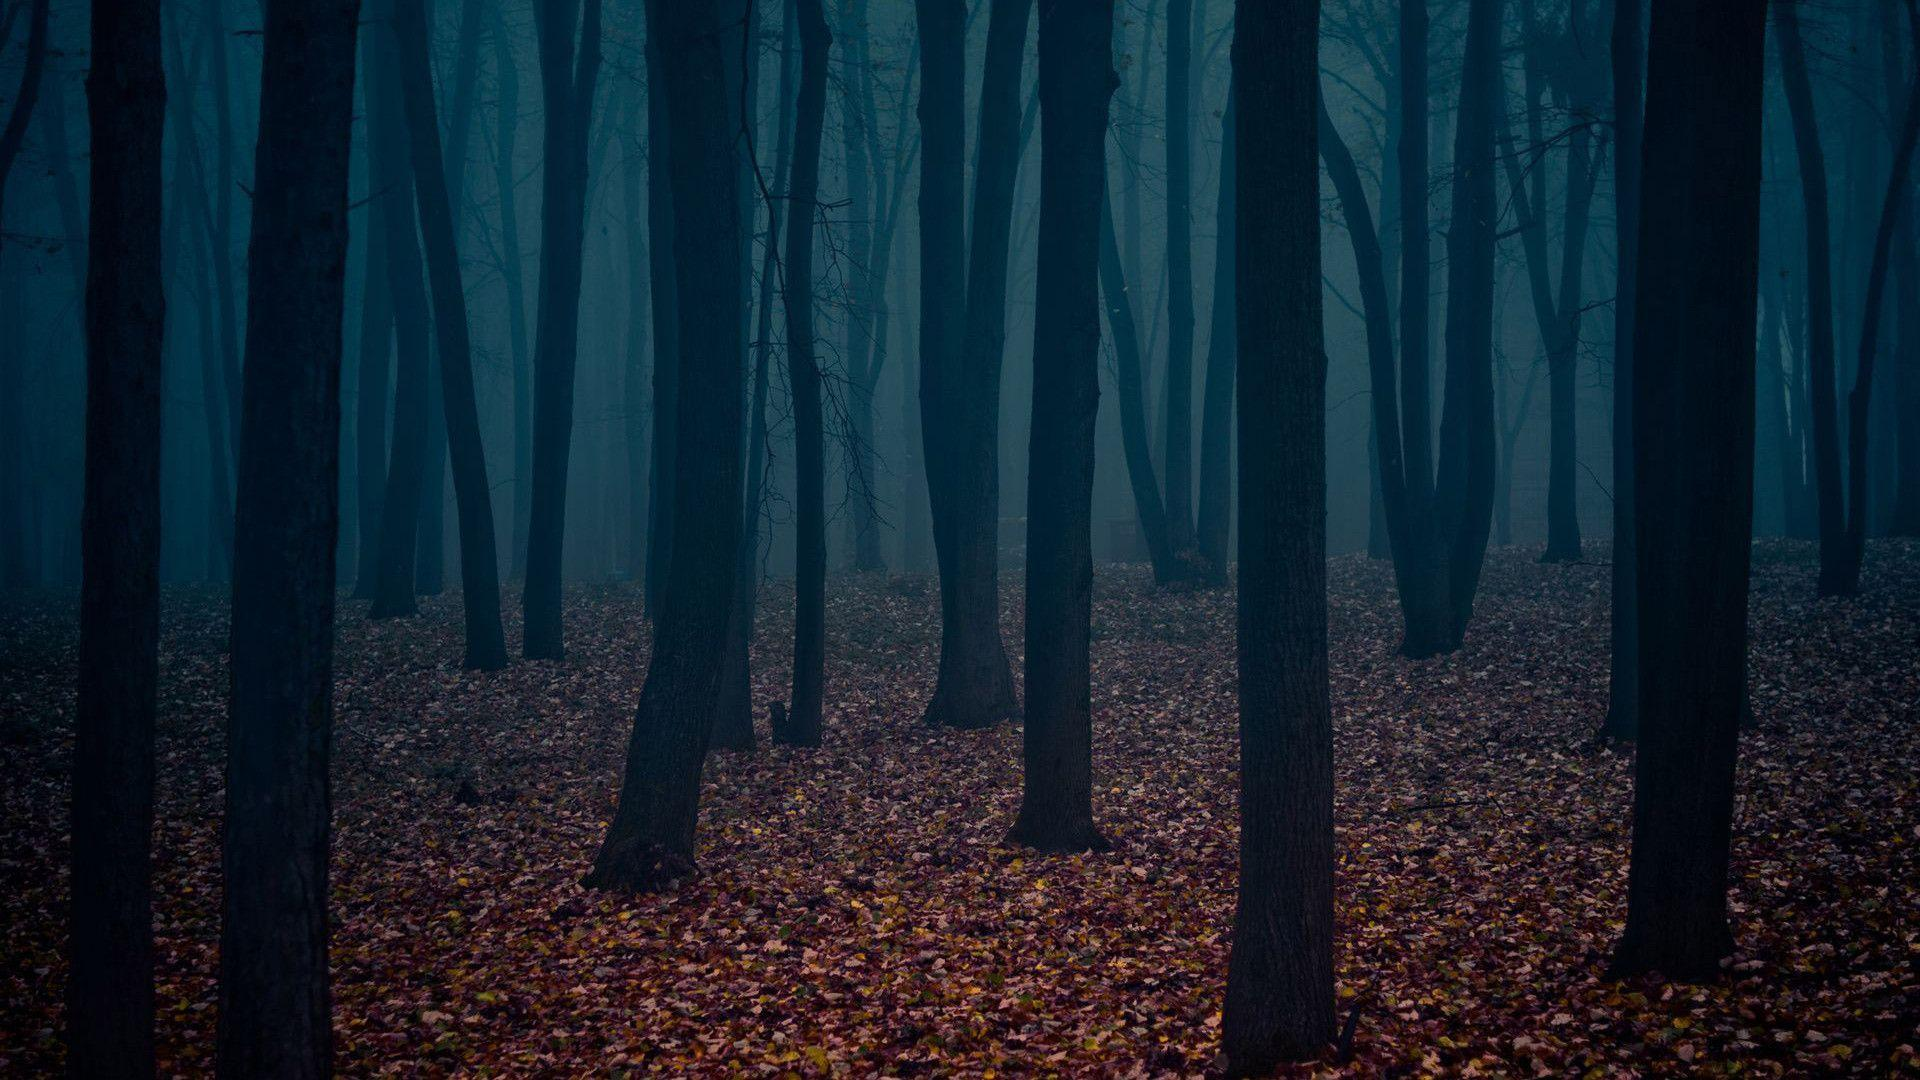 dark places forest trees - photo #24